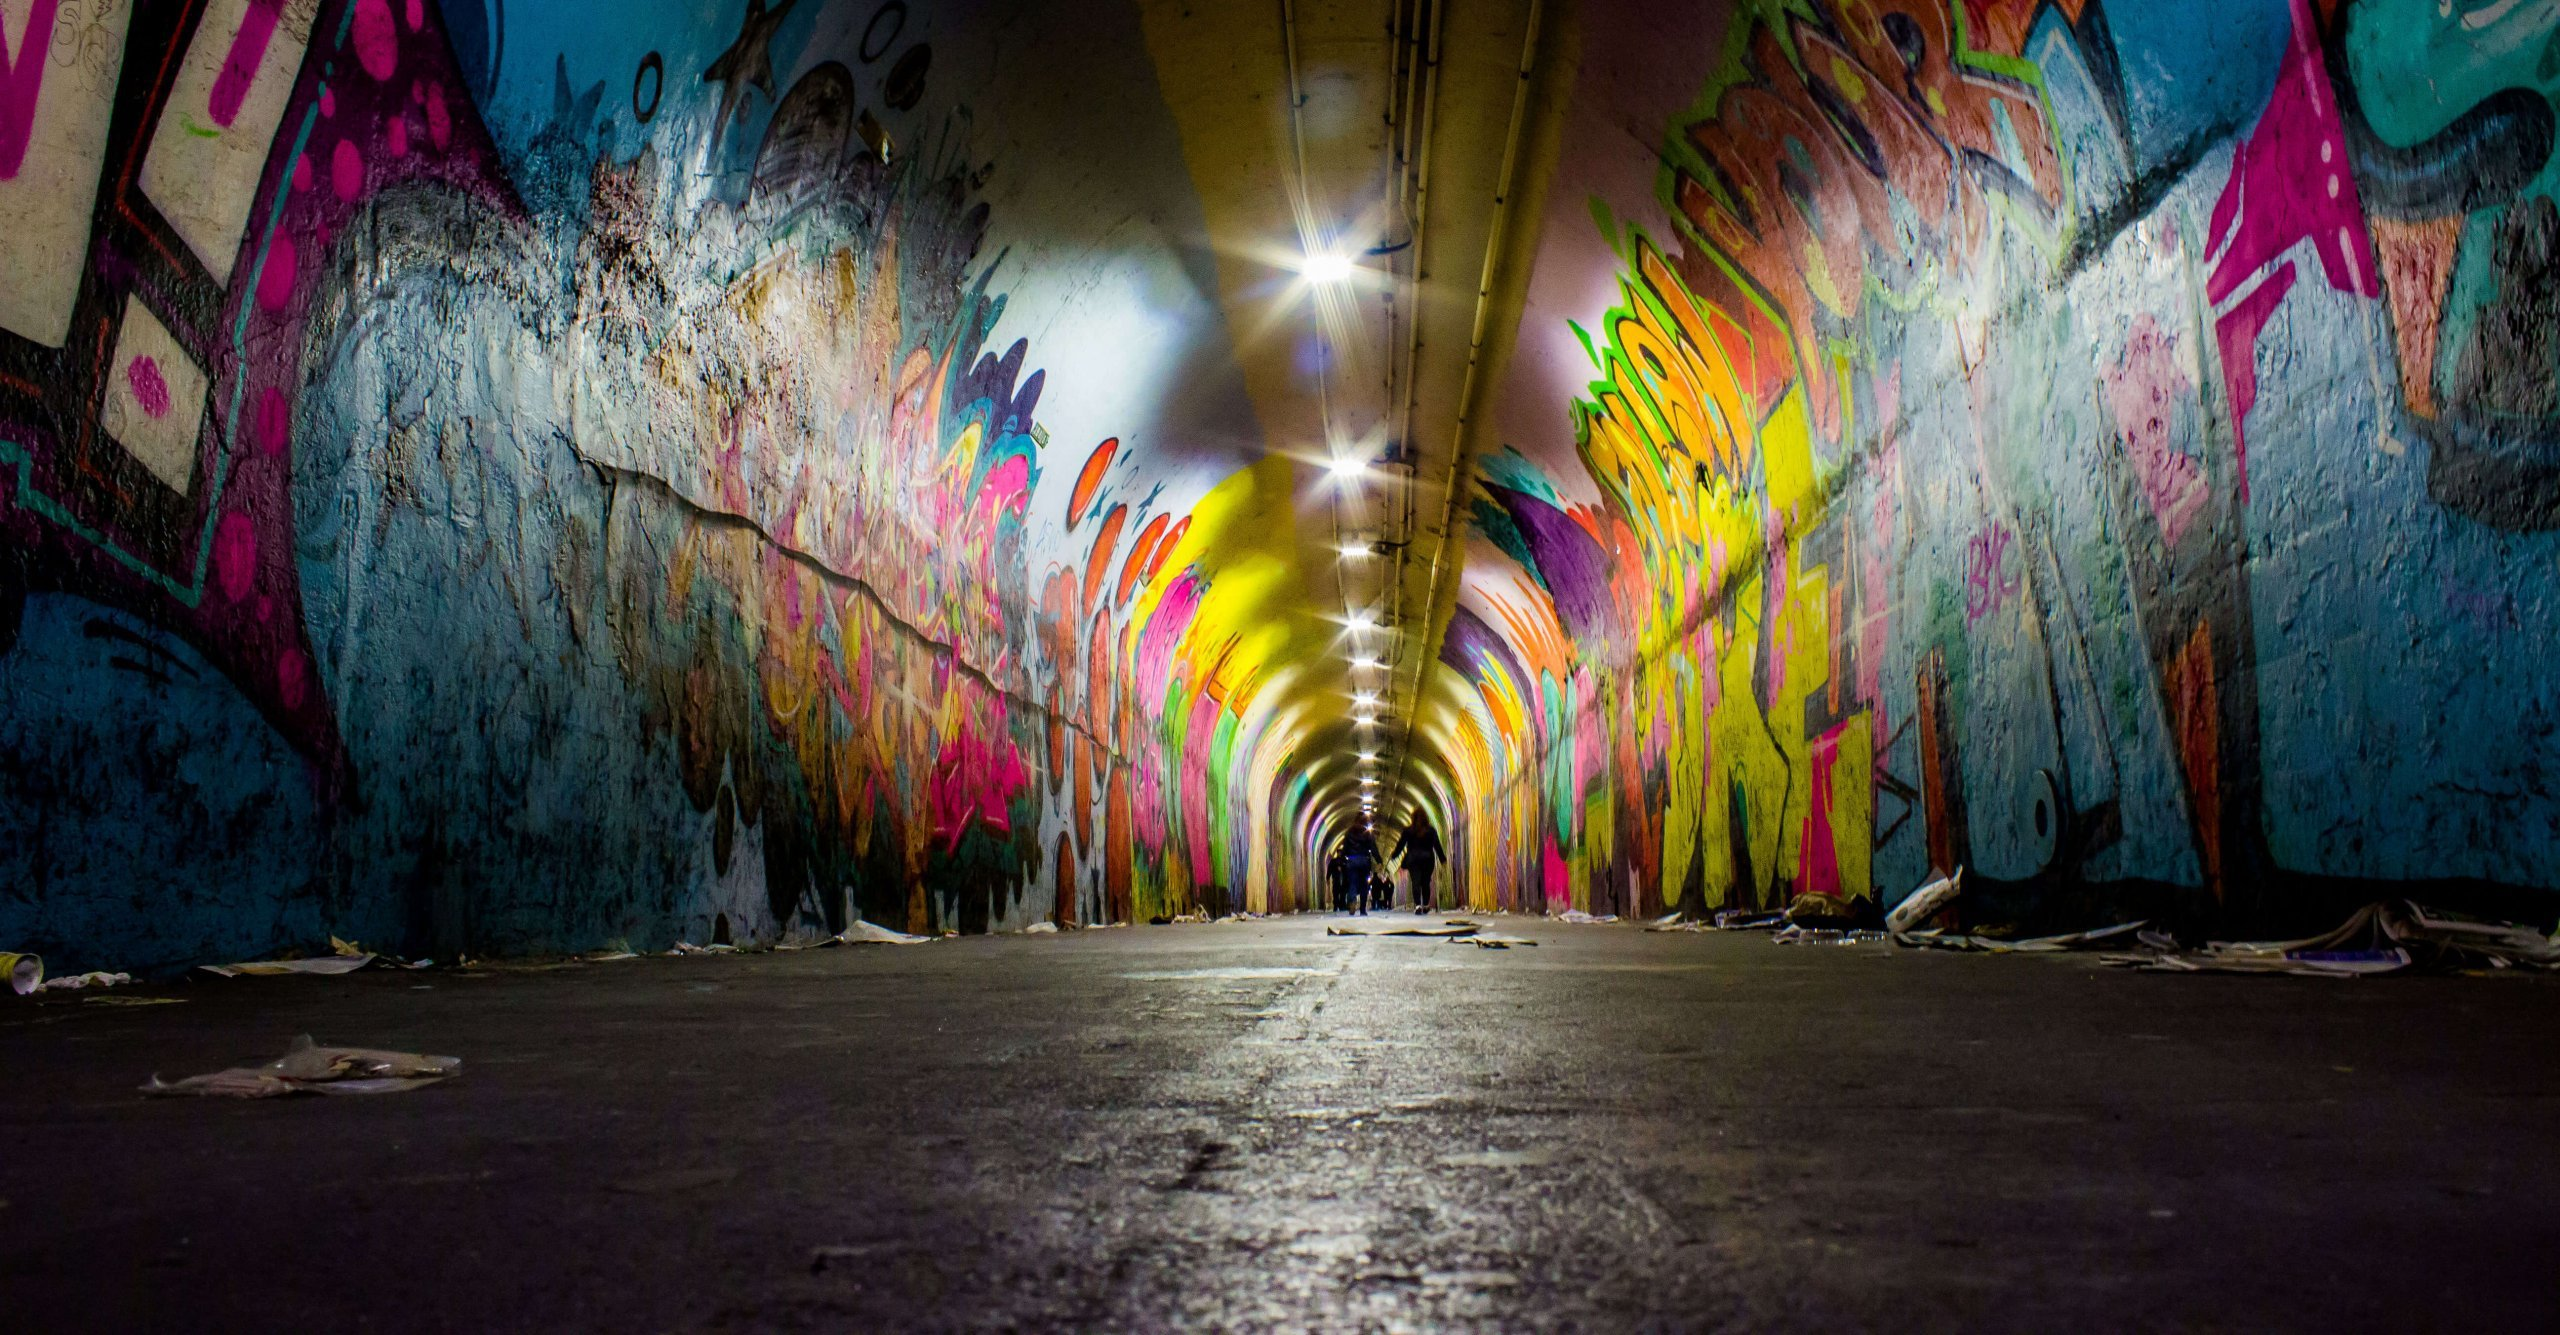 Graffiti covering the walls of a tunnel